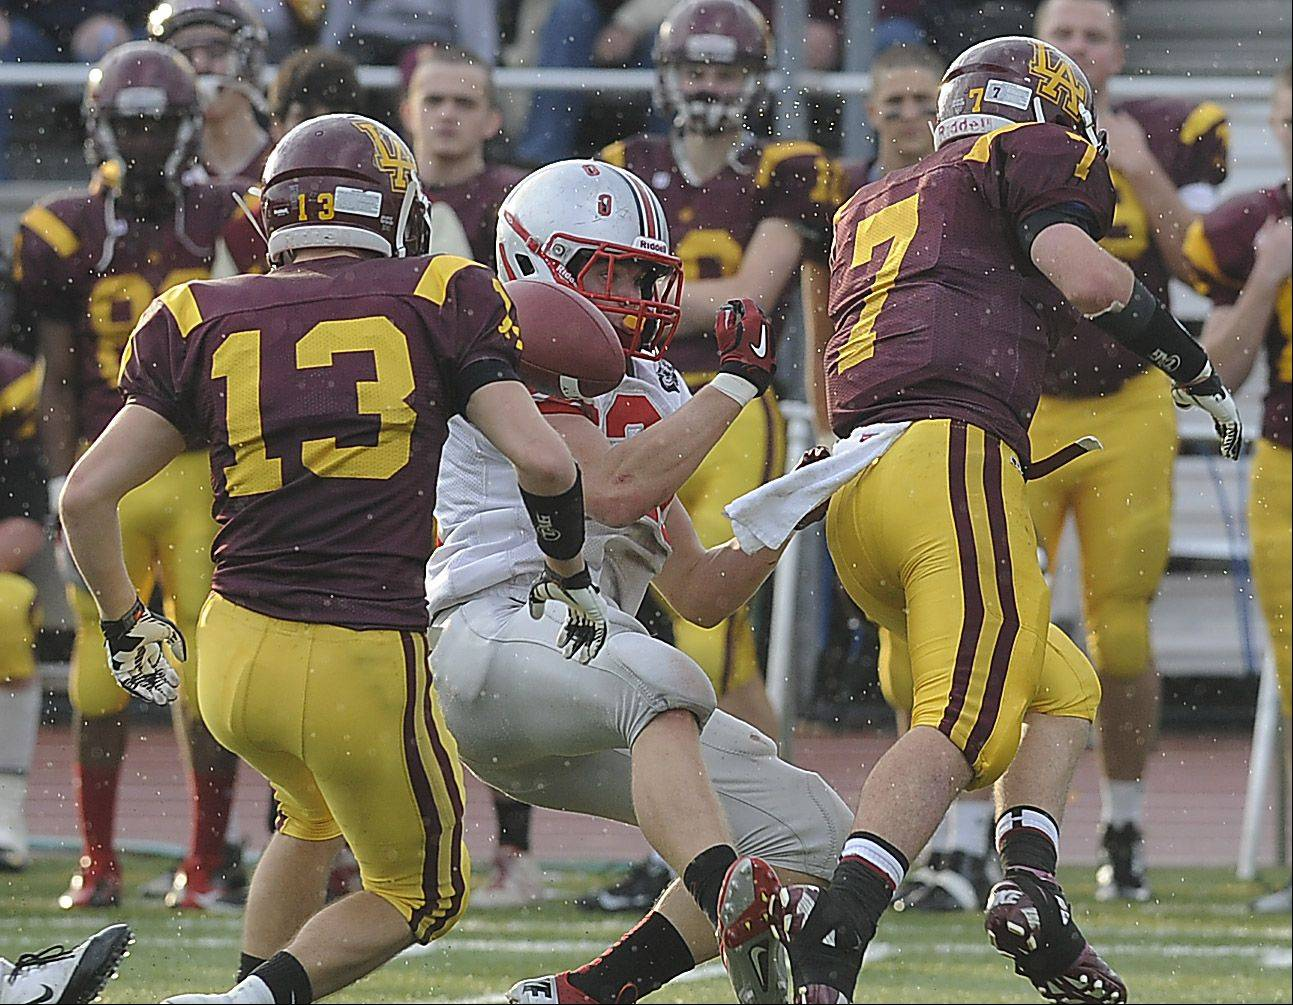 Palatine's Dan Riddle is hit on this broken-pass play by Loyola's Daniel Rafferty in the third quarter .